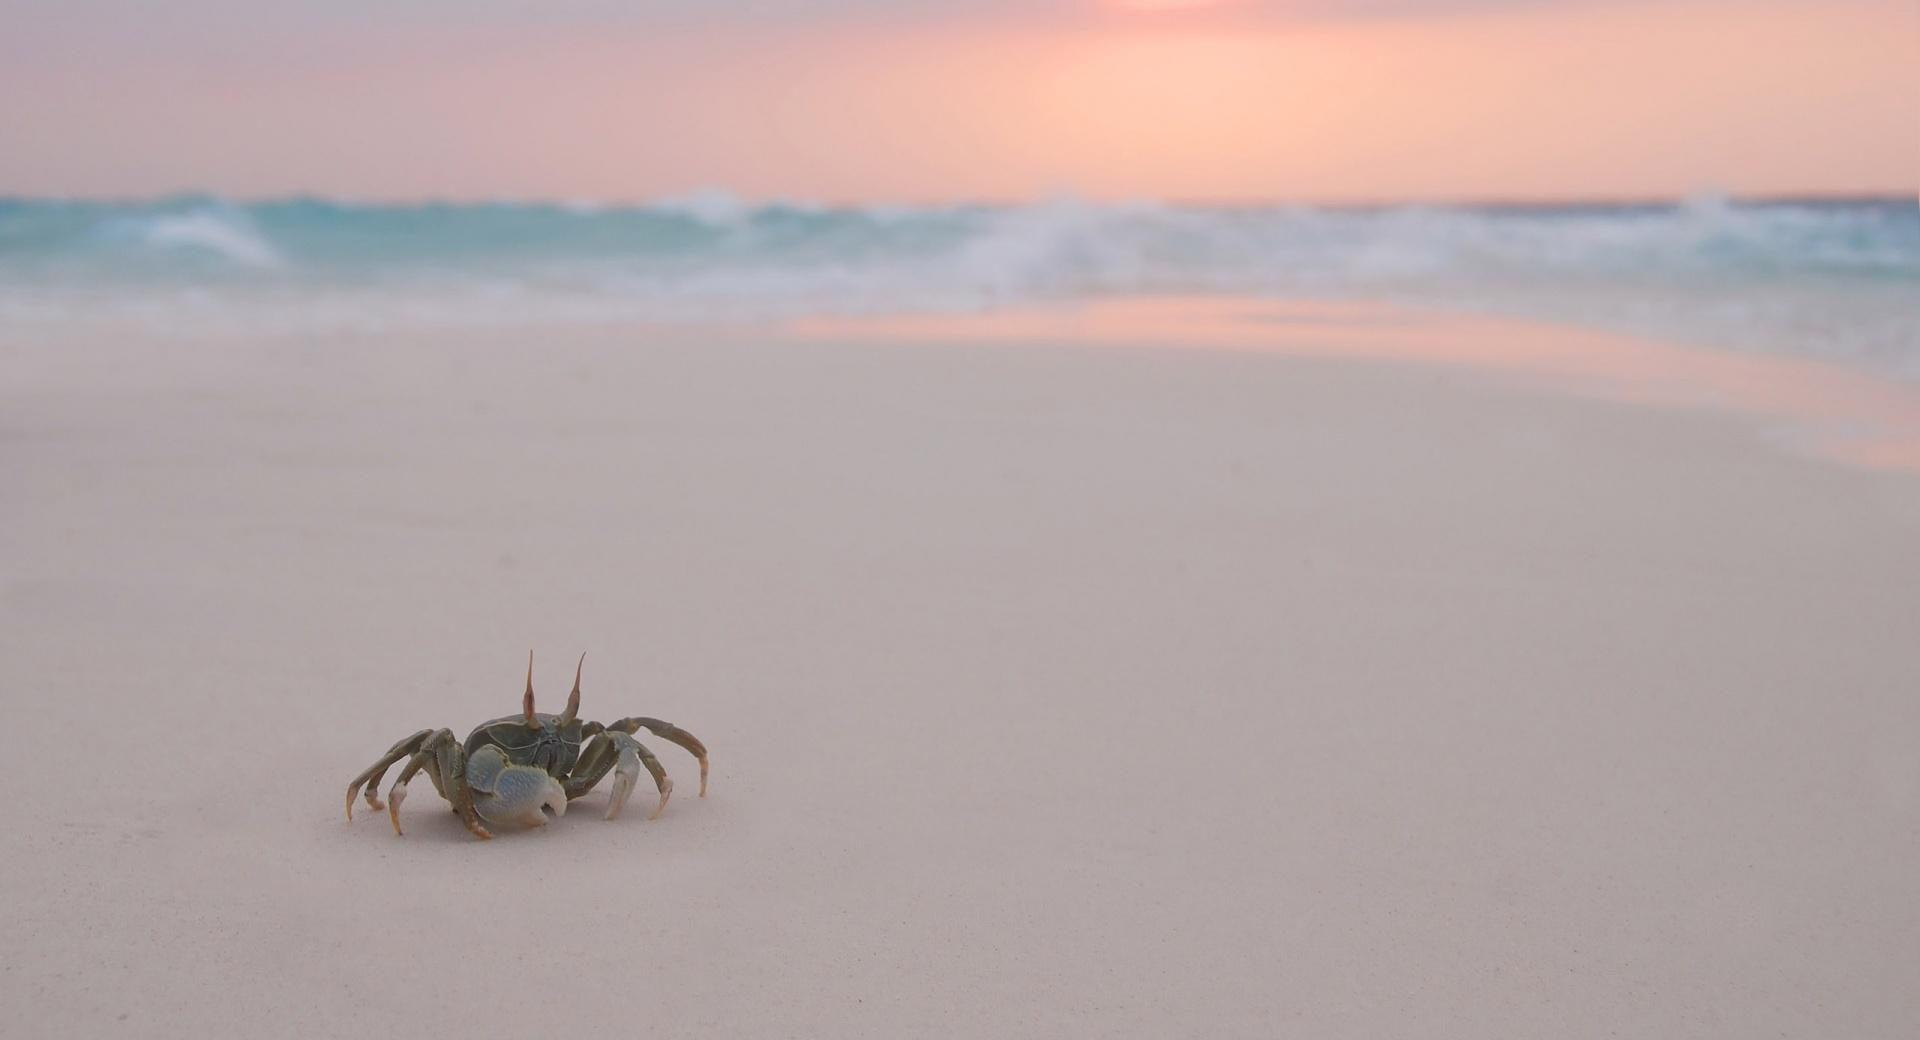 Crab On Beach wallpapers HD quality